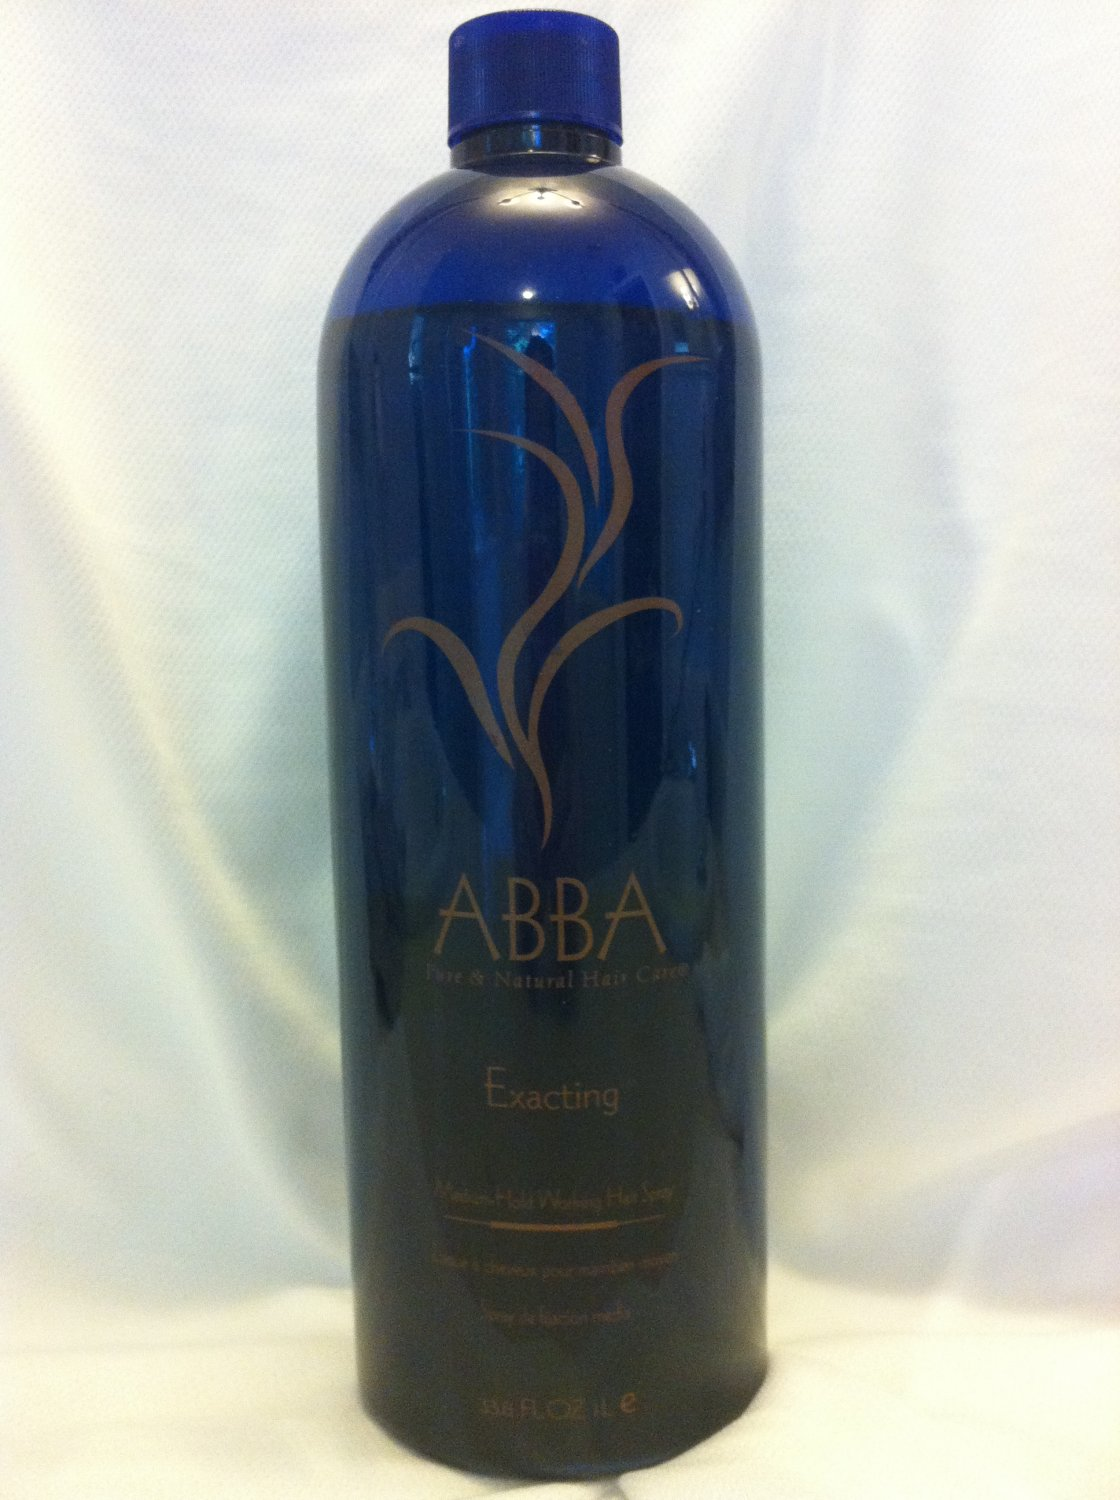 Abba Exacting Medium Hold Working Hair Spray 33.8oz